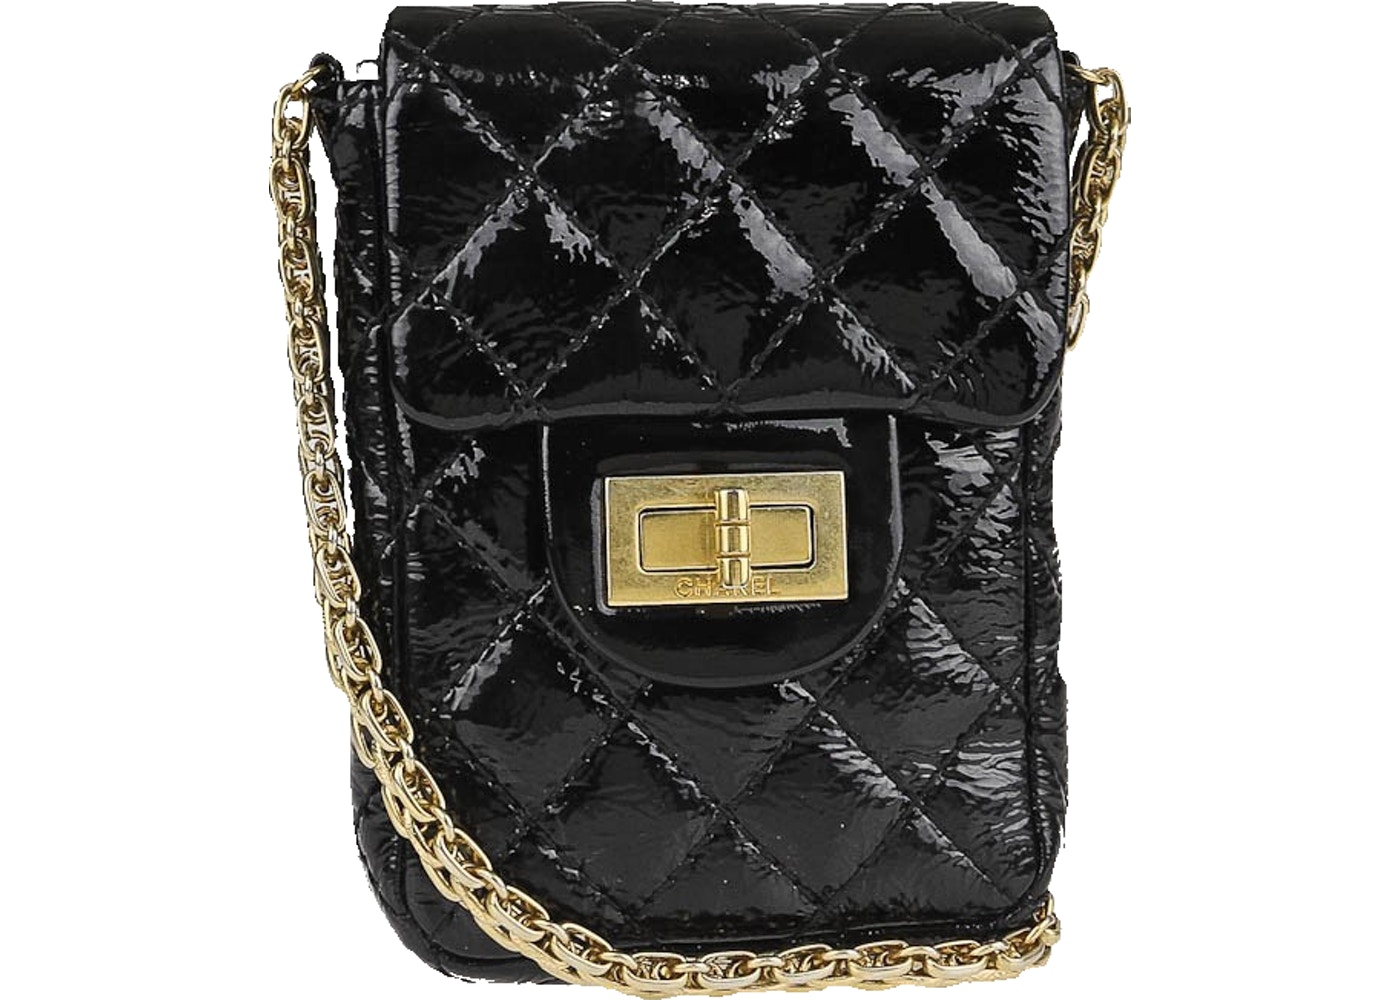 a3fe4b2e77ab Sell. or Ask. View All Bids. Chanel Reissue 2.55 Crossbody ...